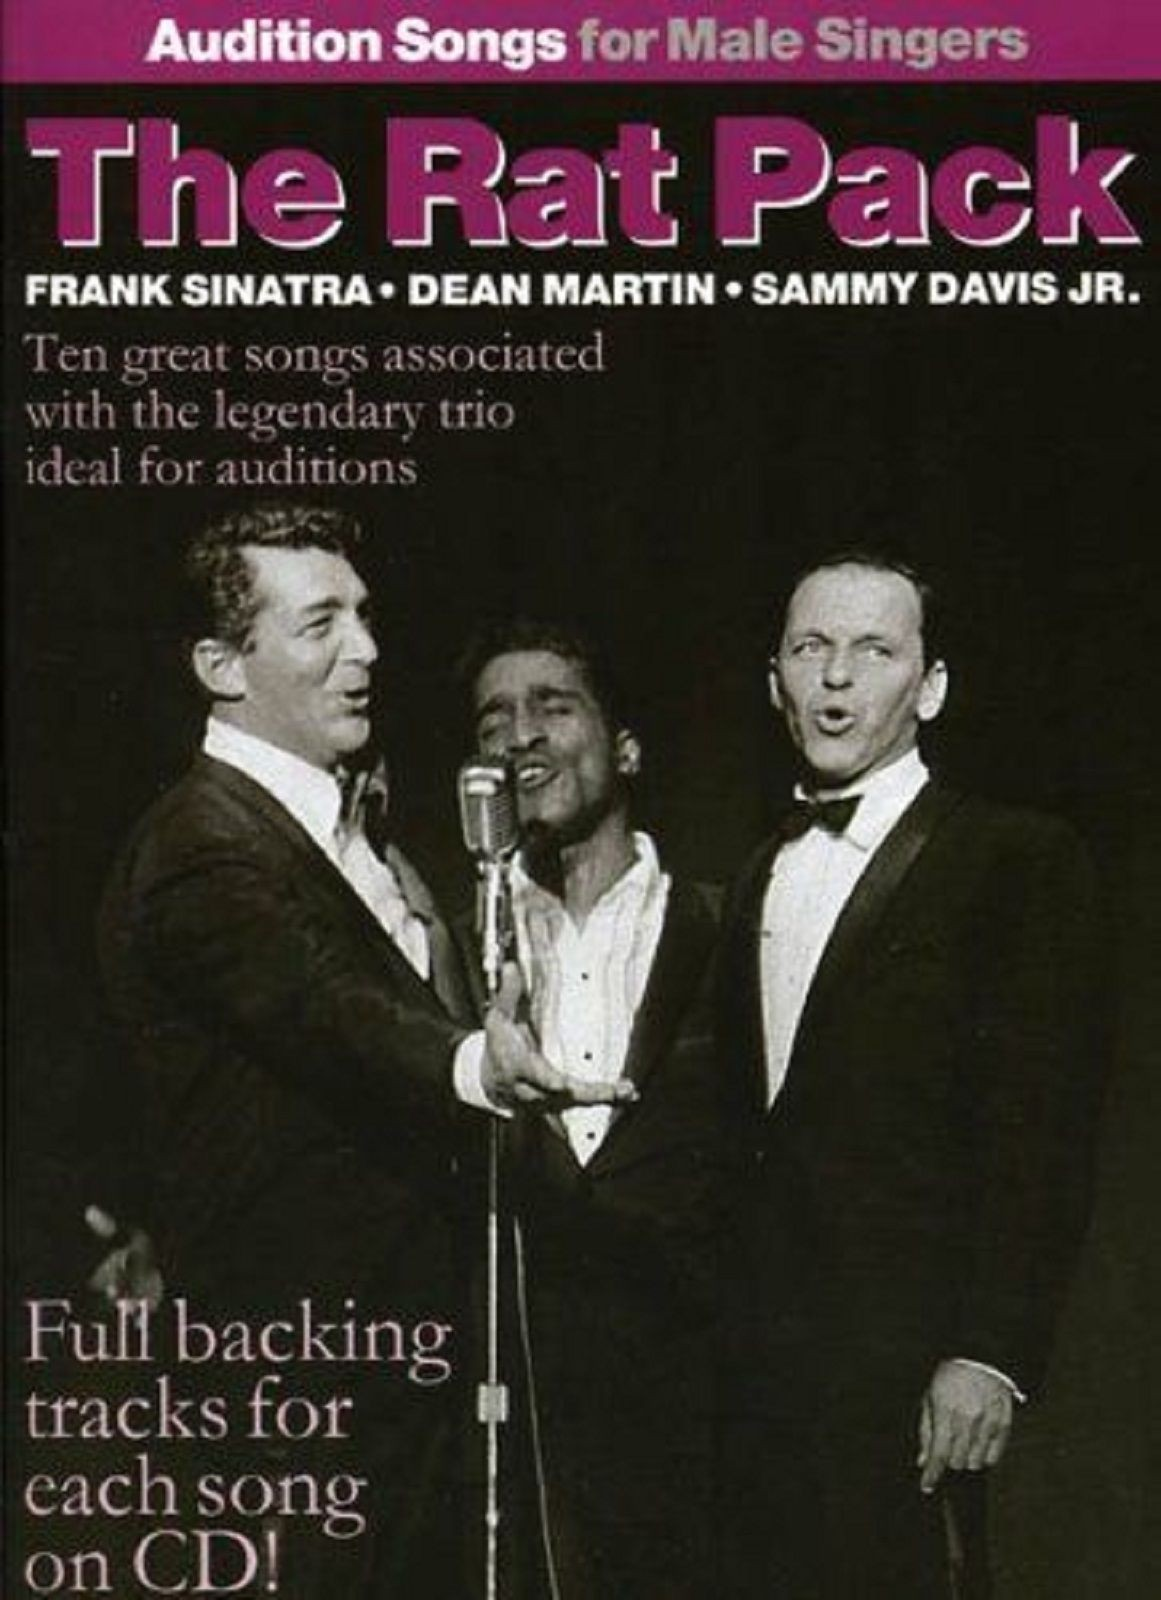 Audition Songs For Male Singers The Rat Pack Book CD Sinatra Martin Davis Jr S70